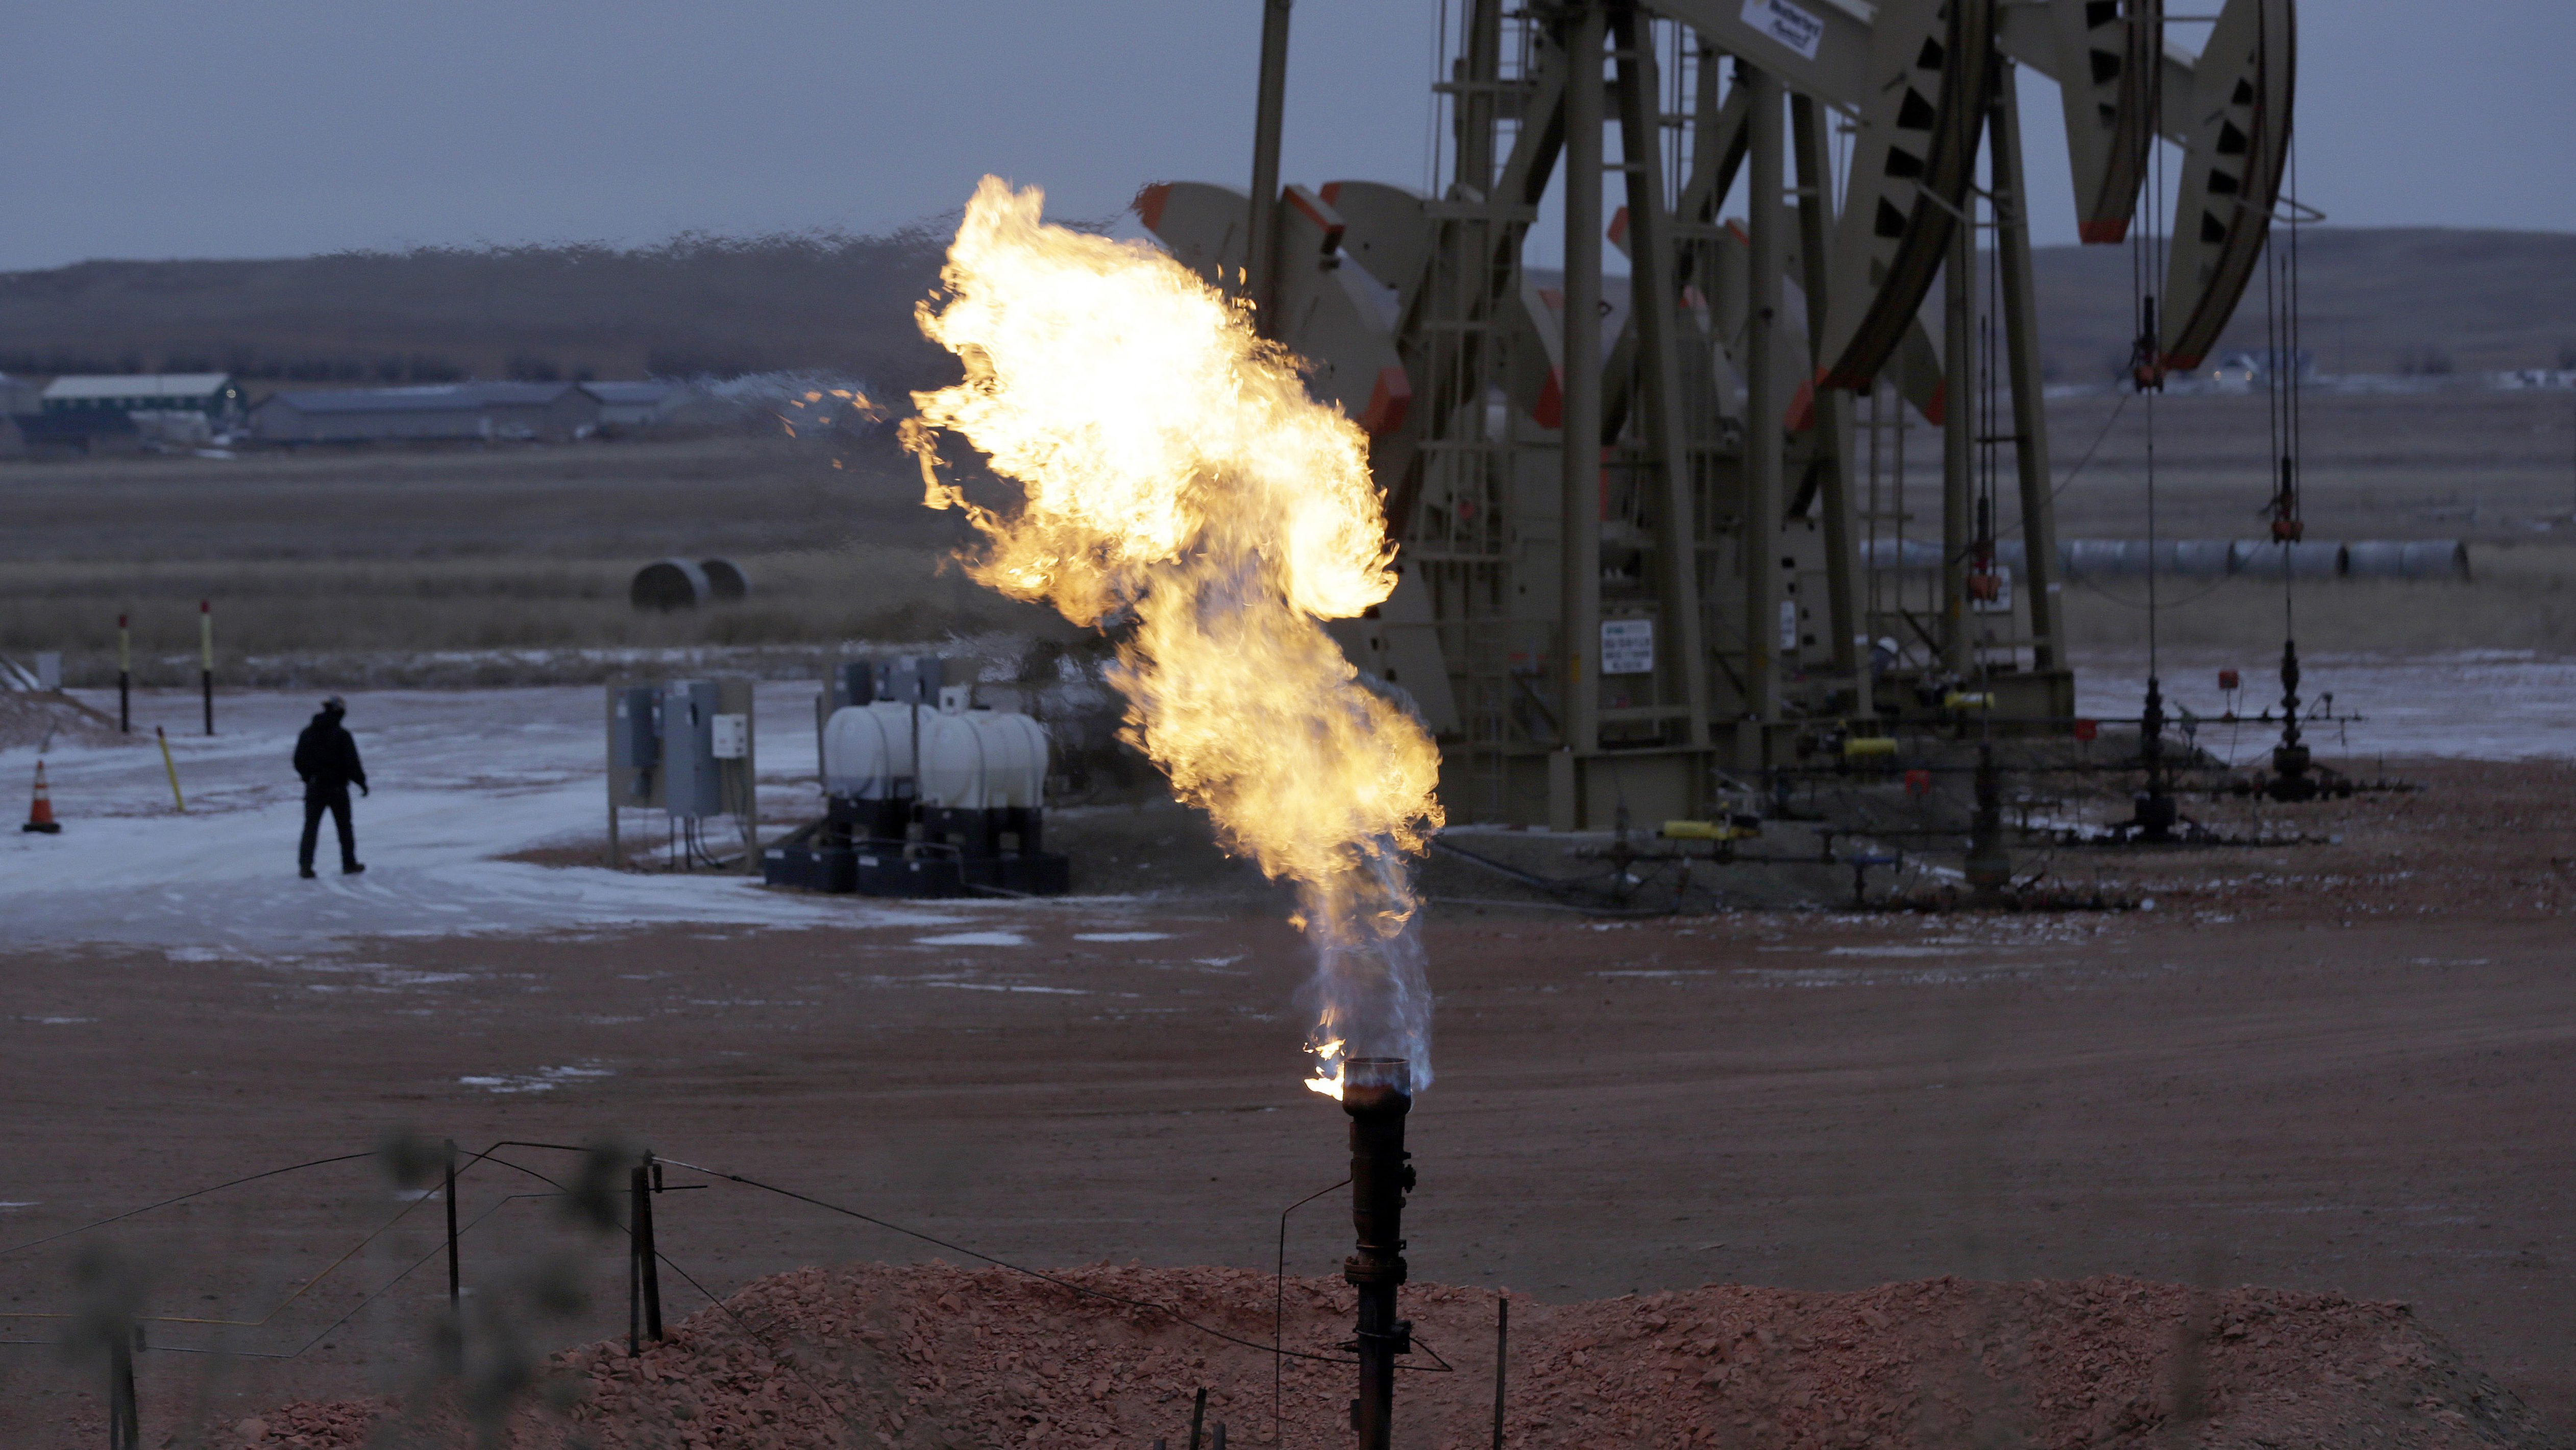 A natural gas flare is seen in front of a oil pumpjack